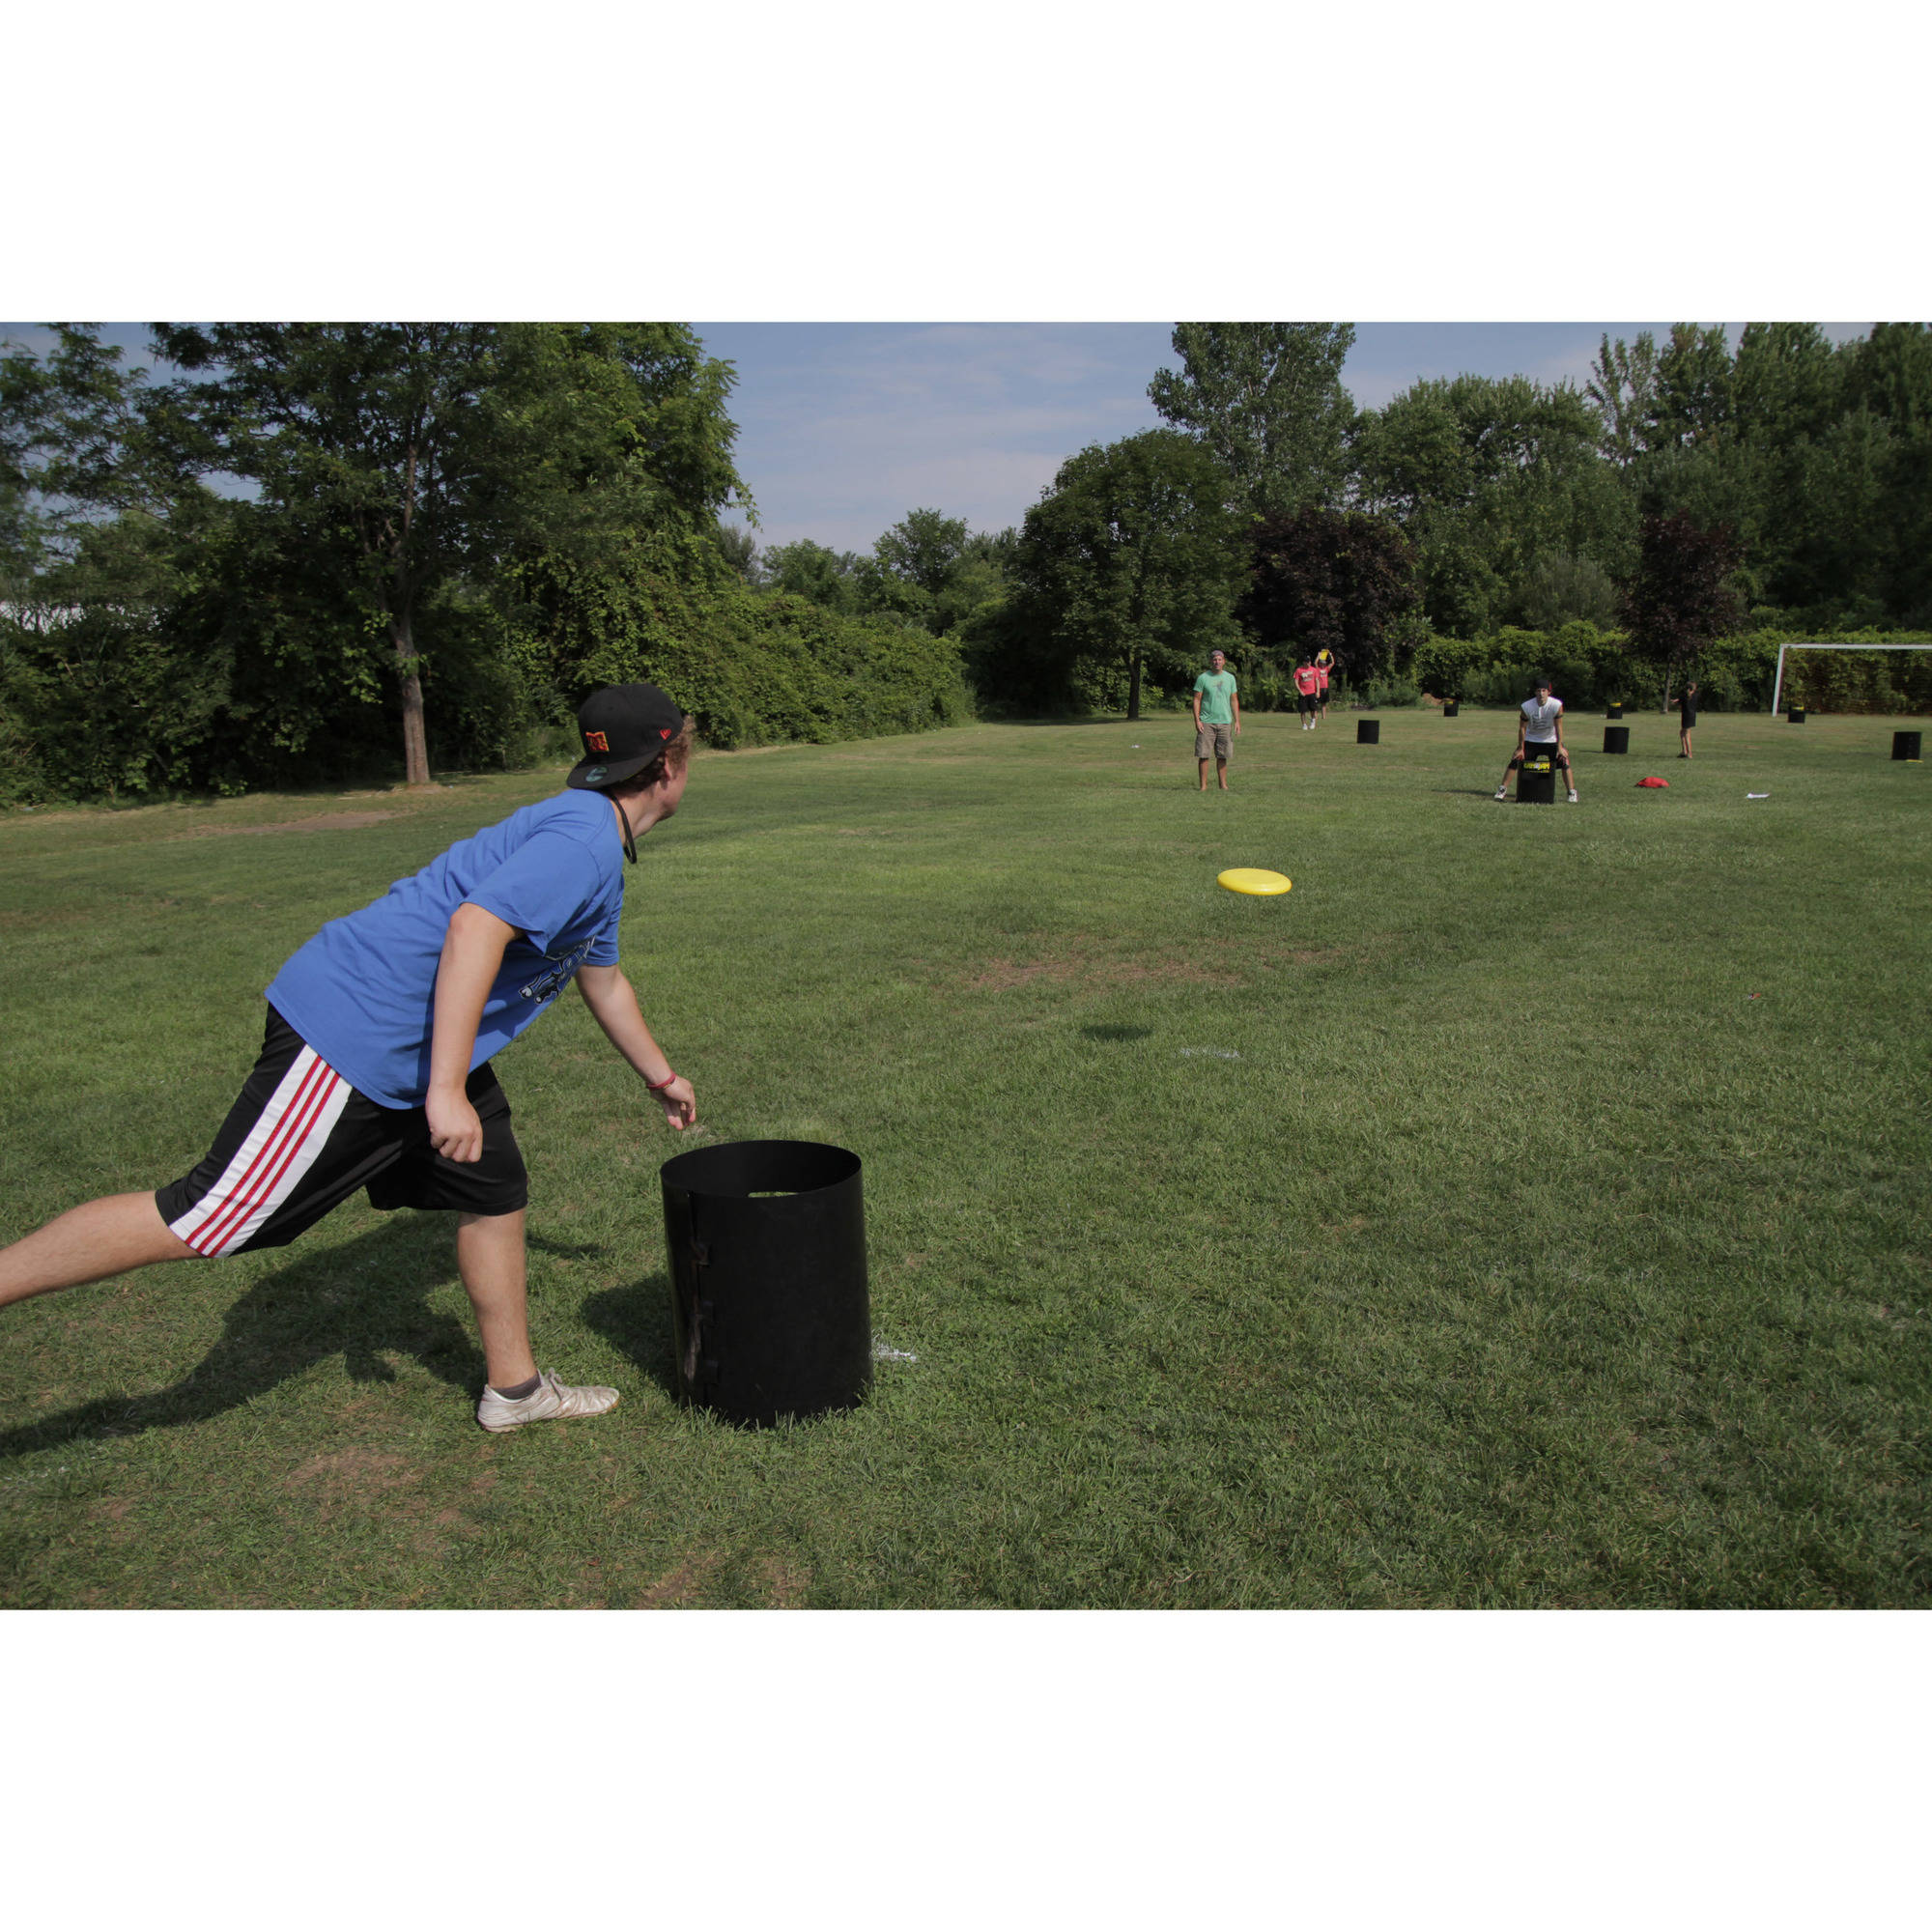 Can Kan Jam Outdoor Ultimate Disc Game Family Portable Fun Event Sports Goods   eBay